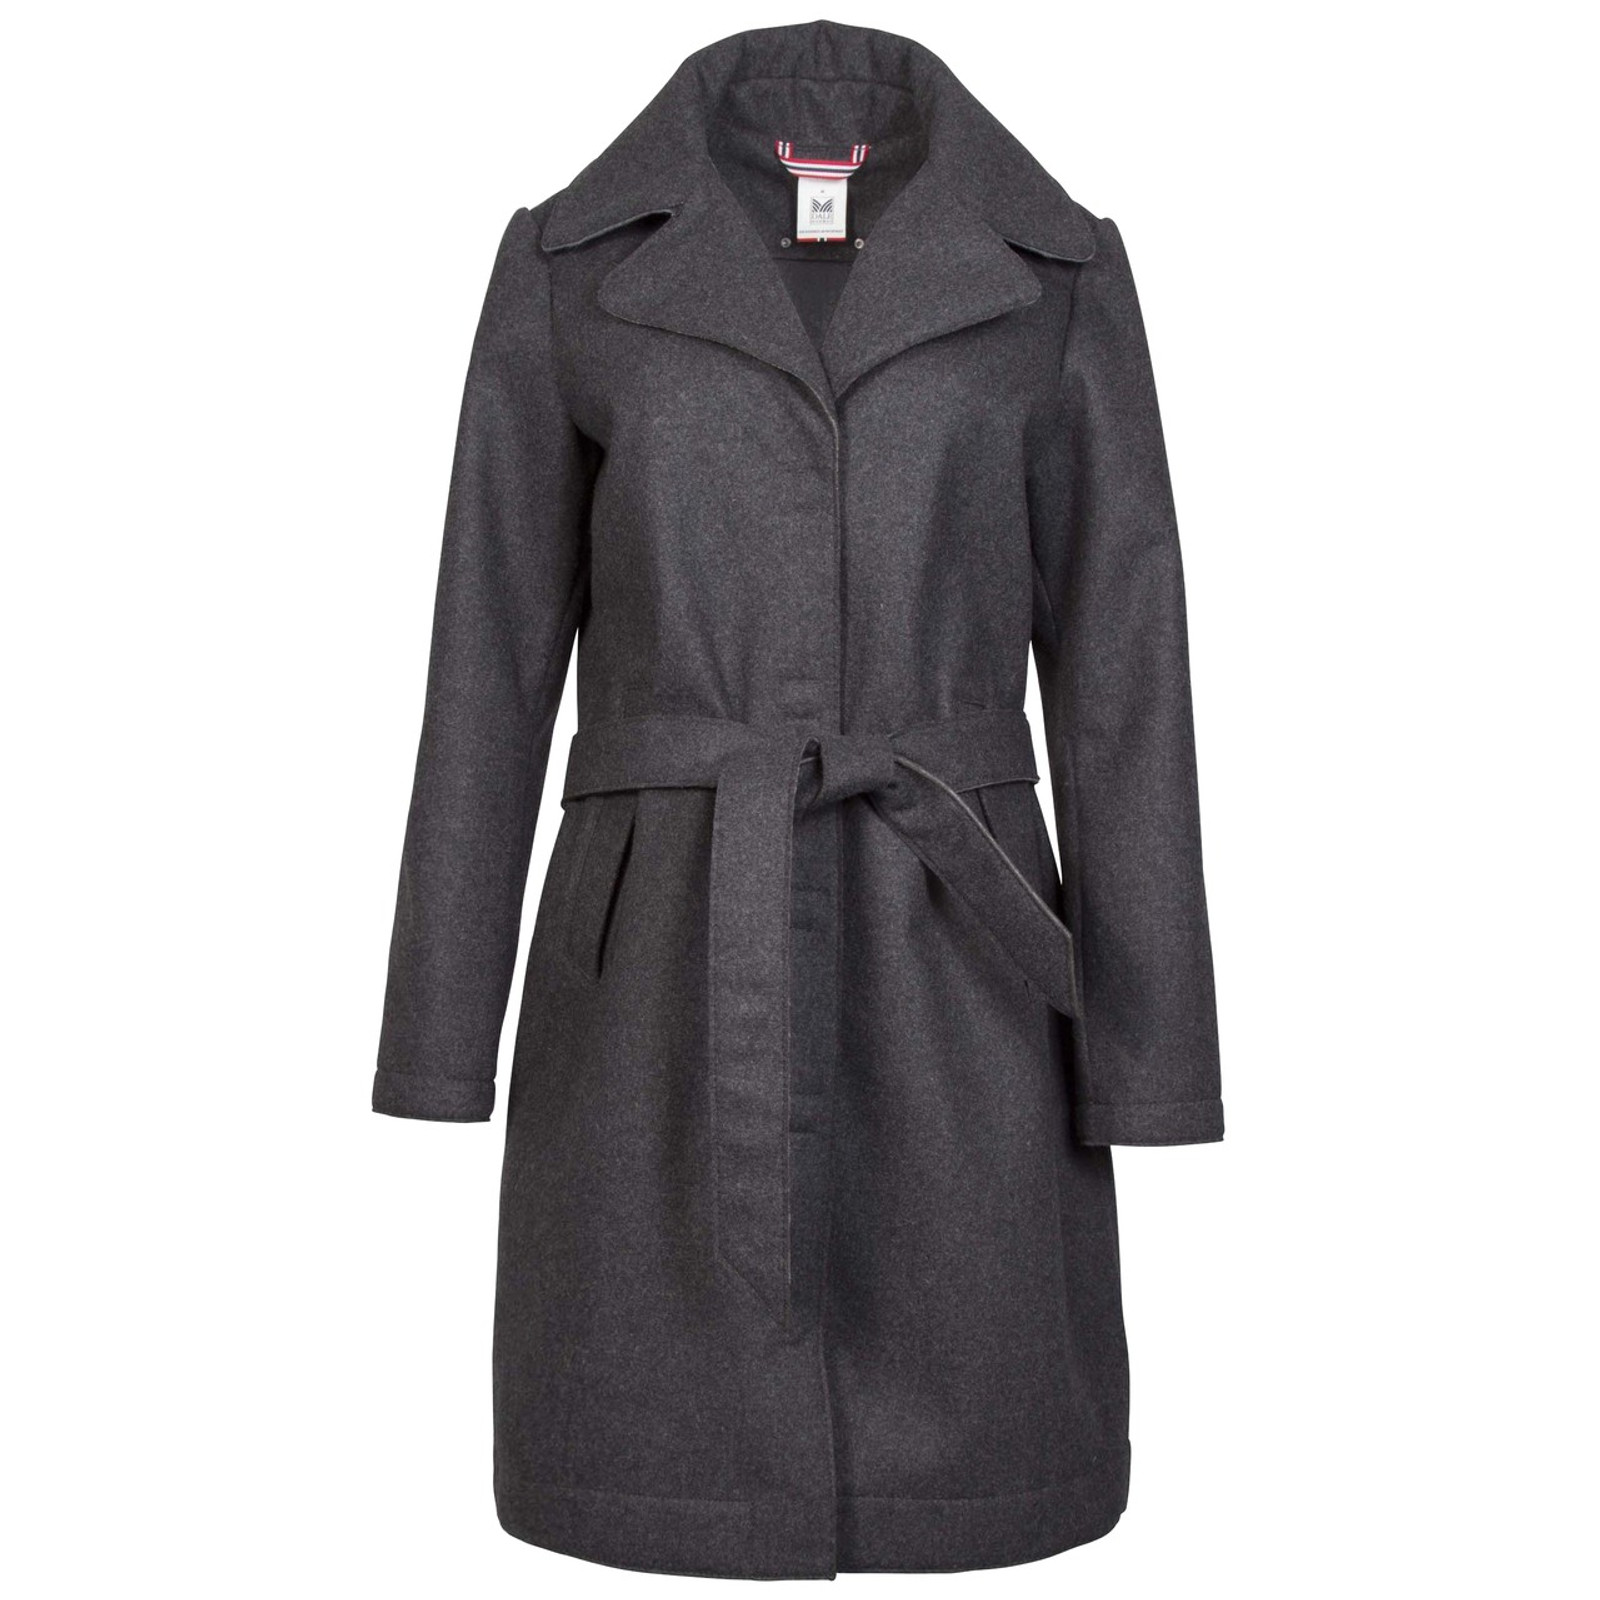 Dale of Norway Yr Woolshell Jacket, Ladies - Dark Charcoal, 85201-E with belt